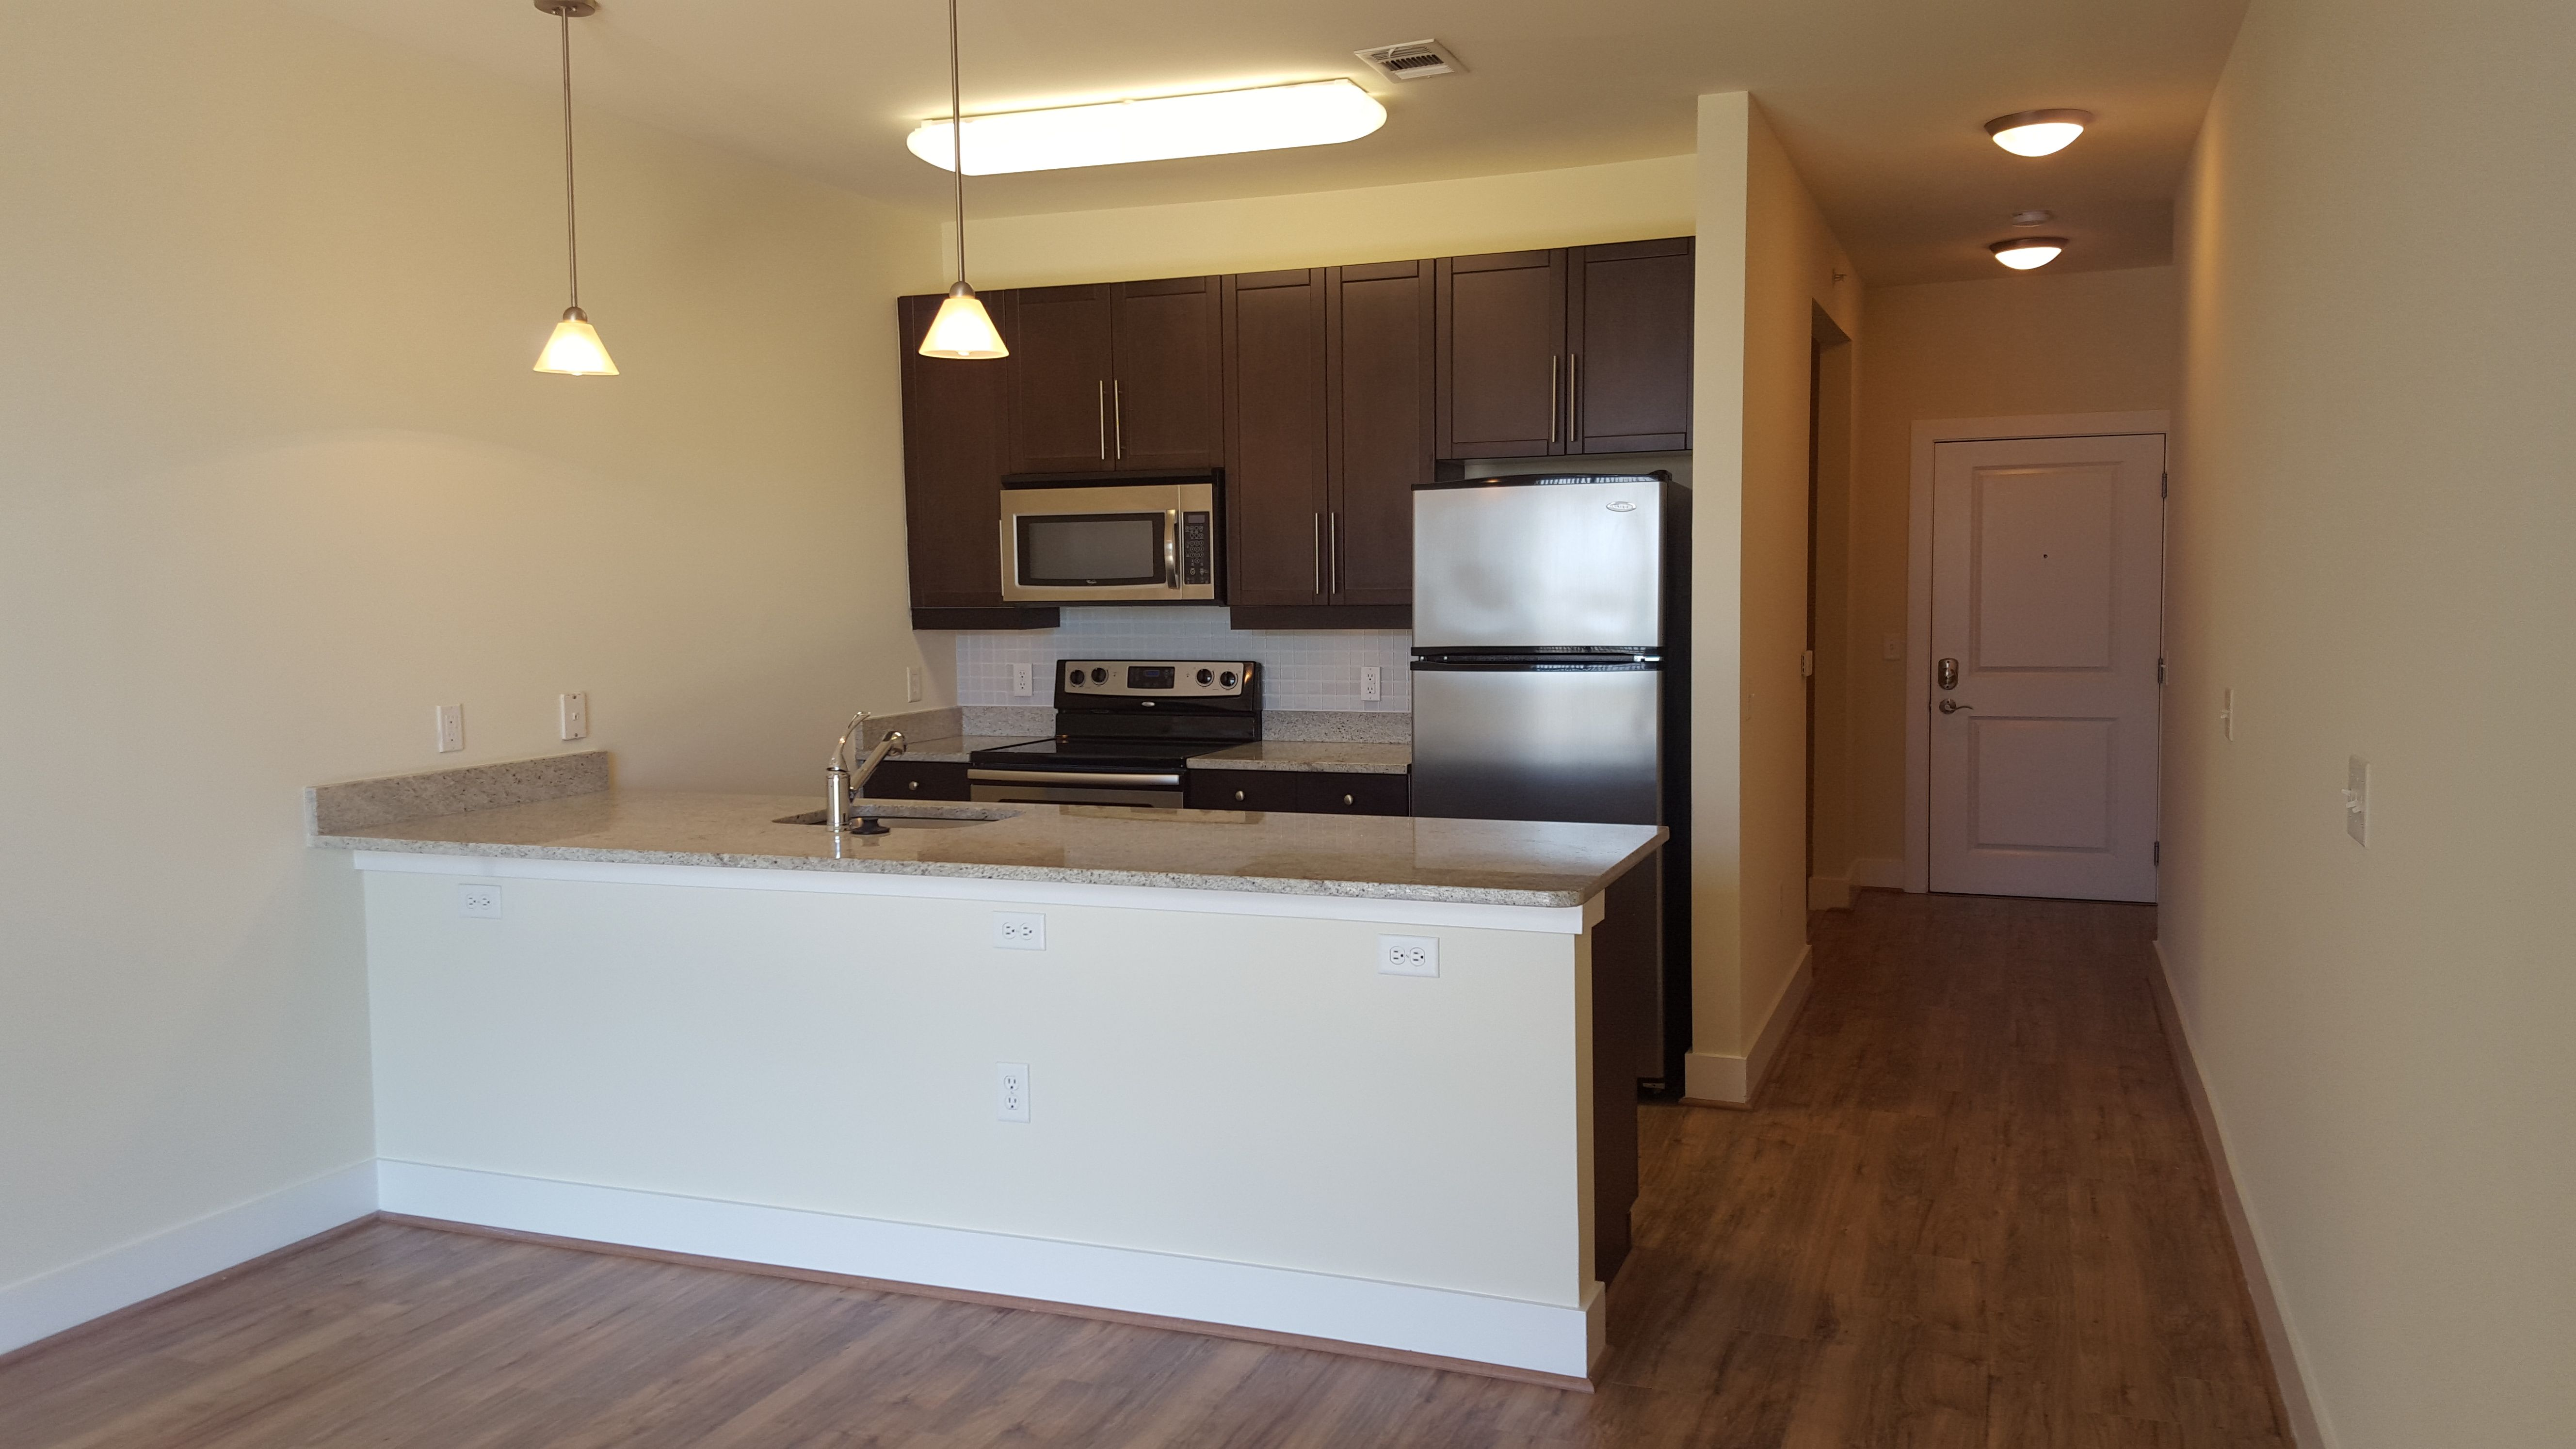 Top Floor Studio Apartment With Wood Flooring At 800 Carlyle Apartments Pendantlighting Whitegranite Tallceilings St Apartment Tall Ceilings White Granite